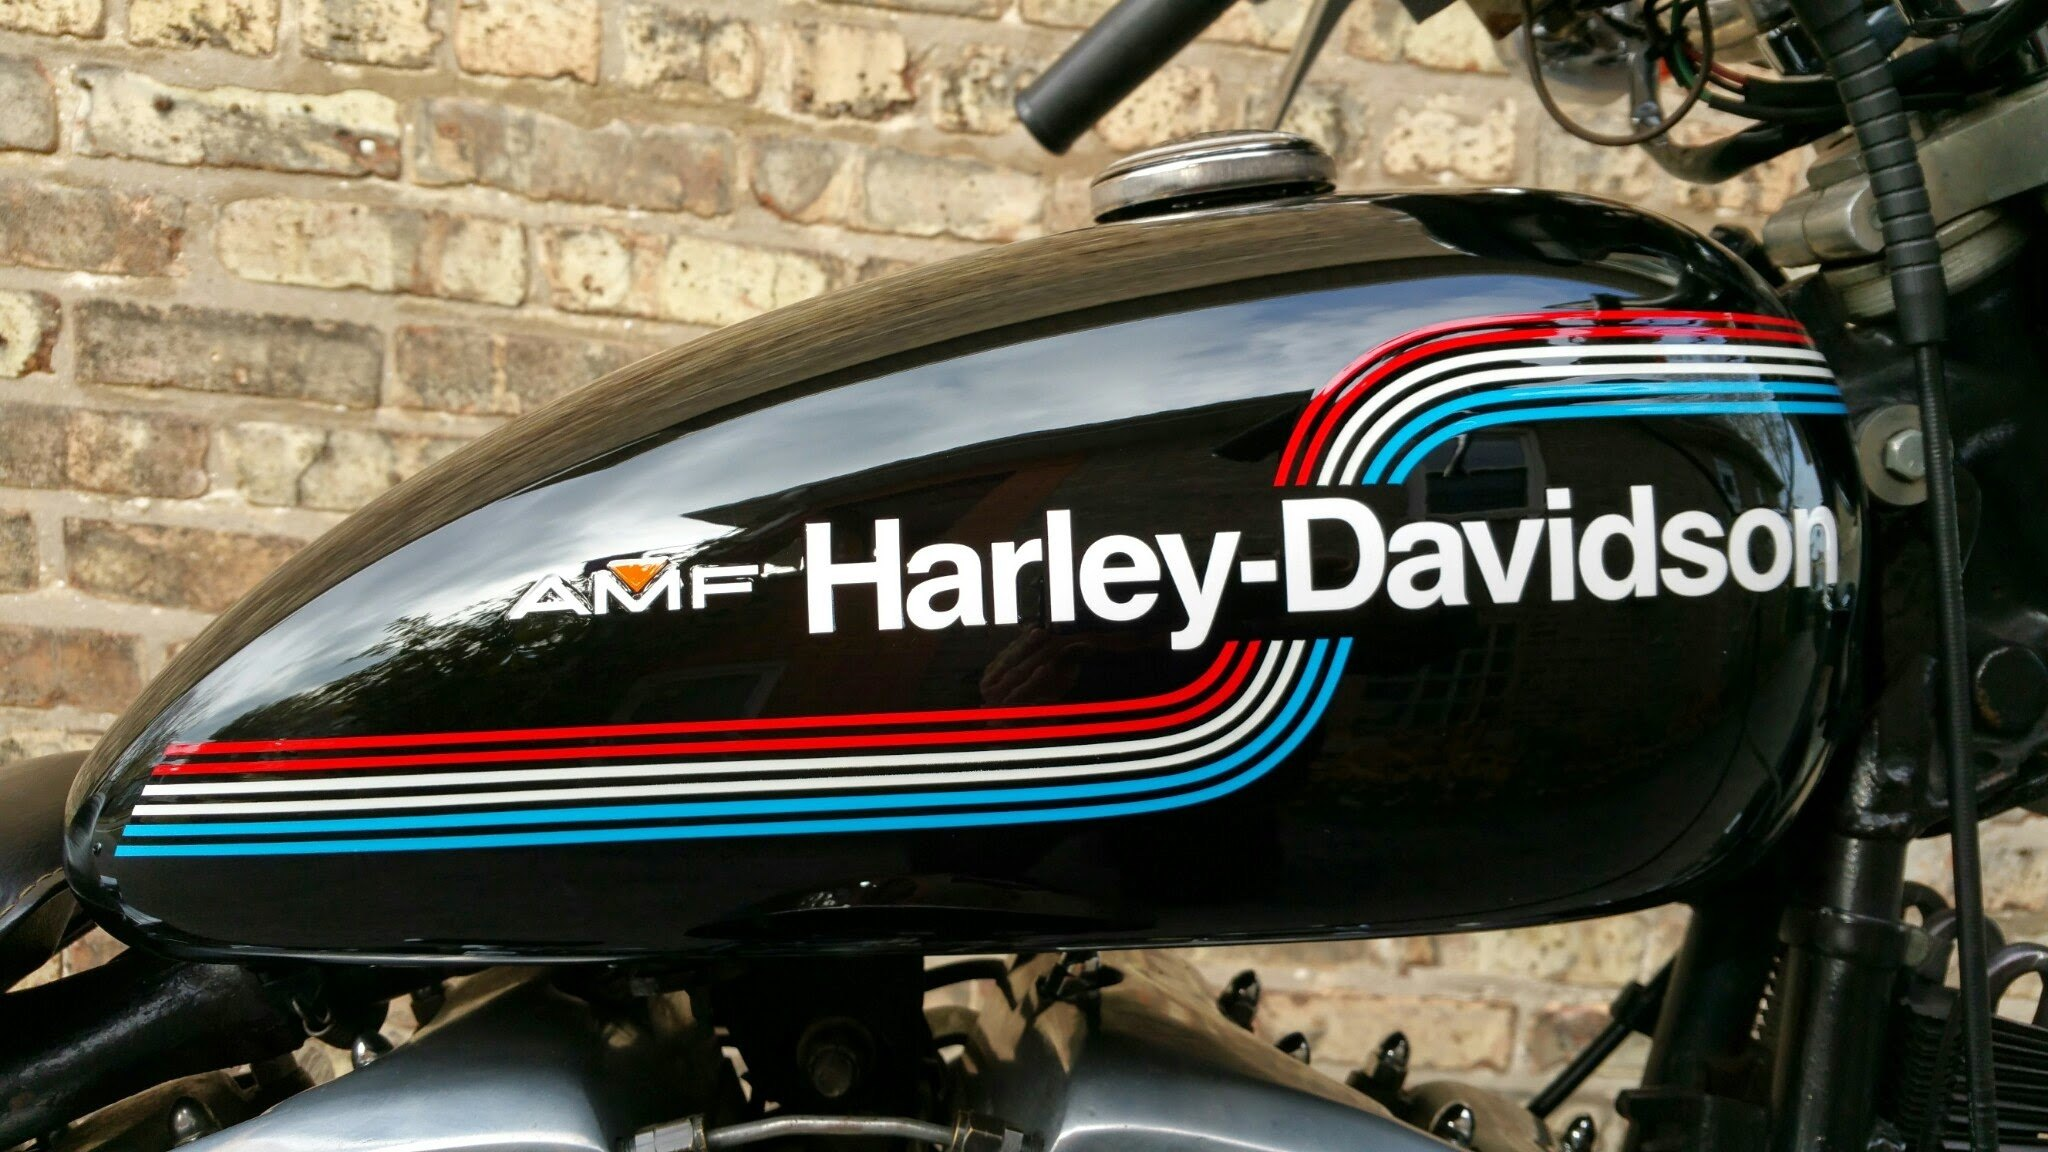 What years did AMF own Harley-Davidson motorcycles? What is the